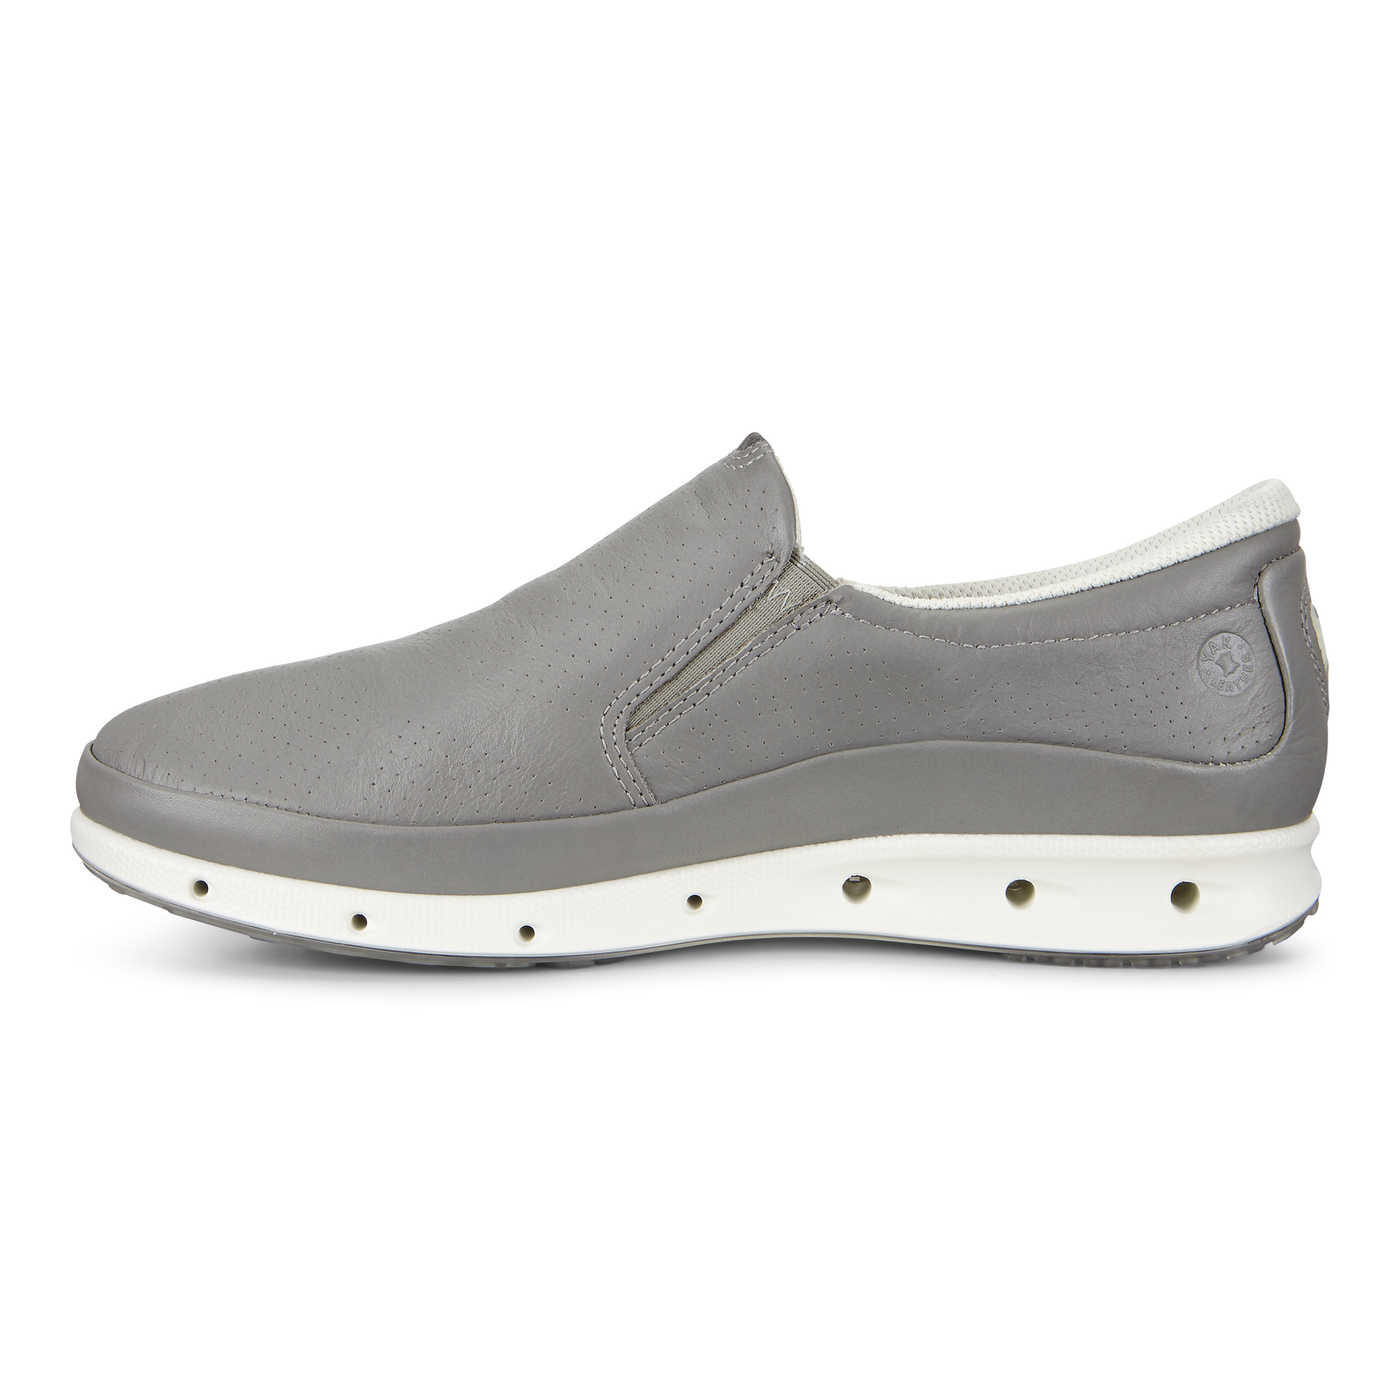 ECCO COOL LADIES Shoe